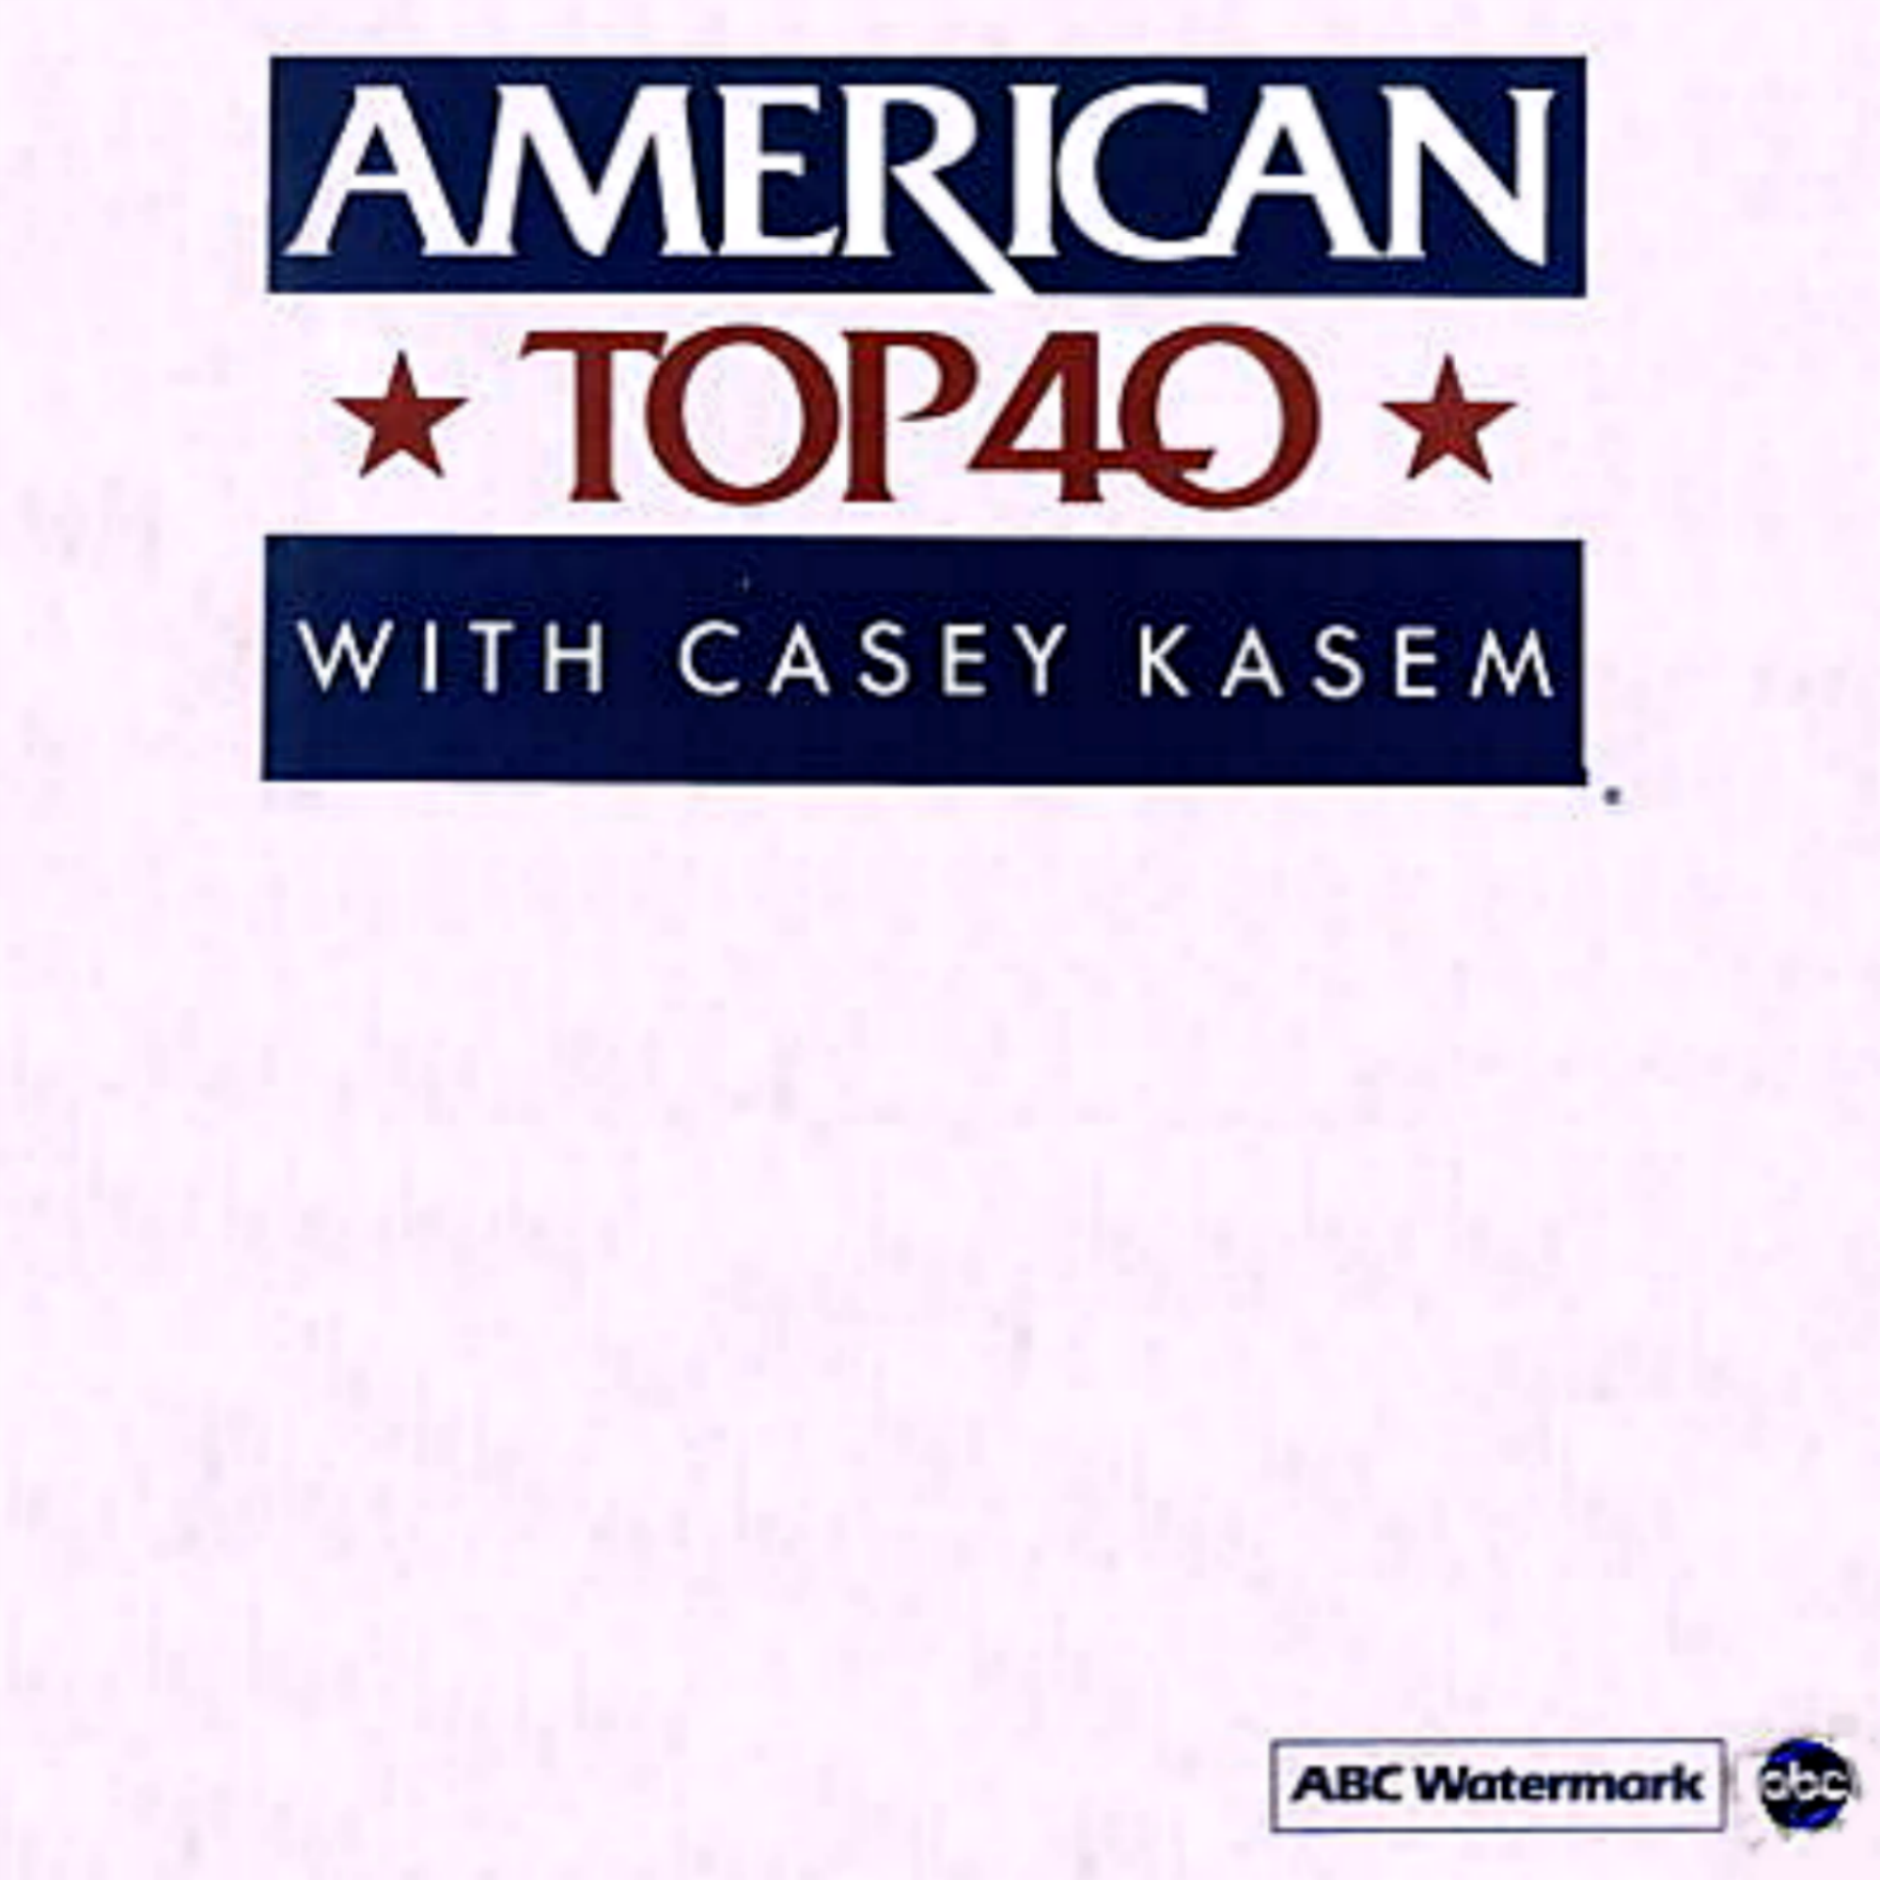 American Top 40 with Casey Kasem July 14 1984